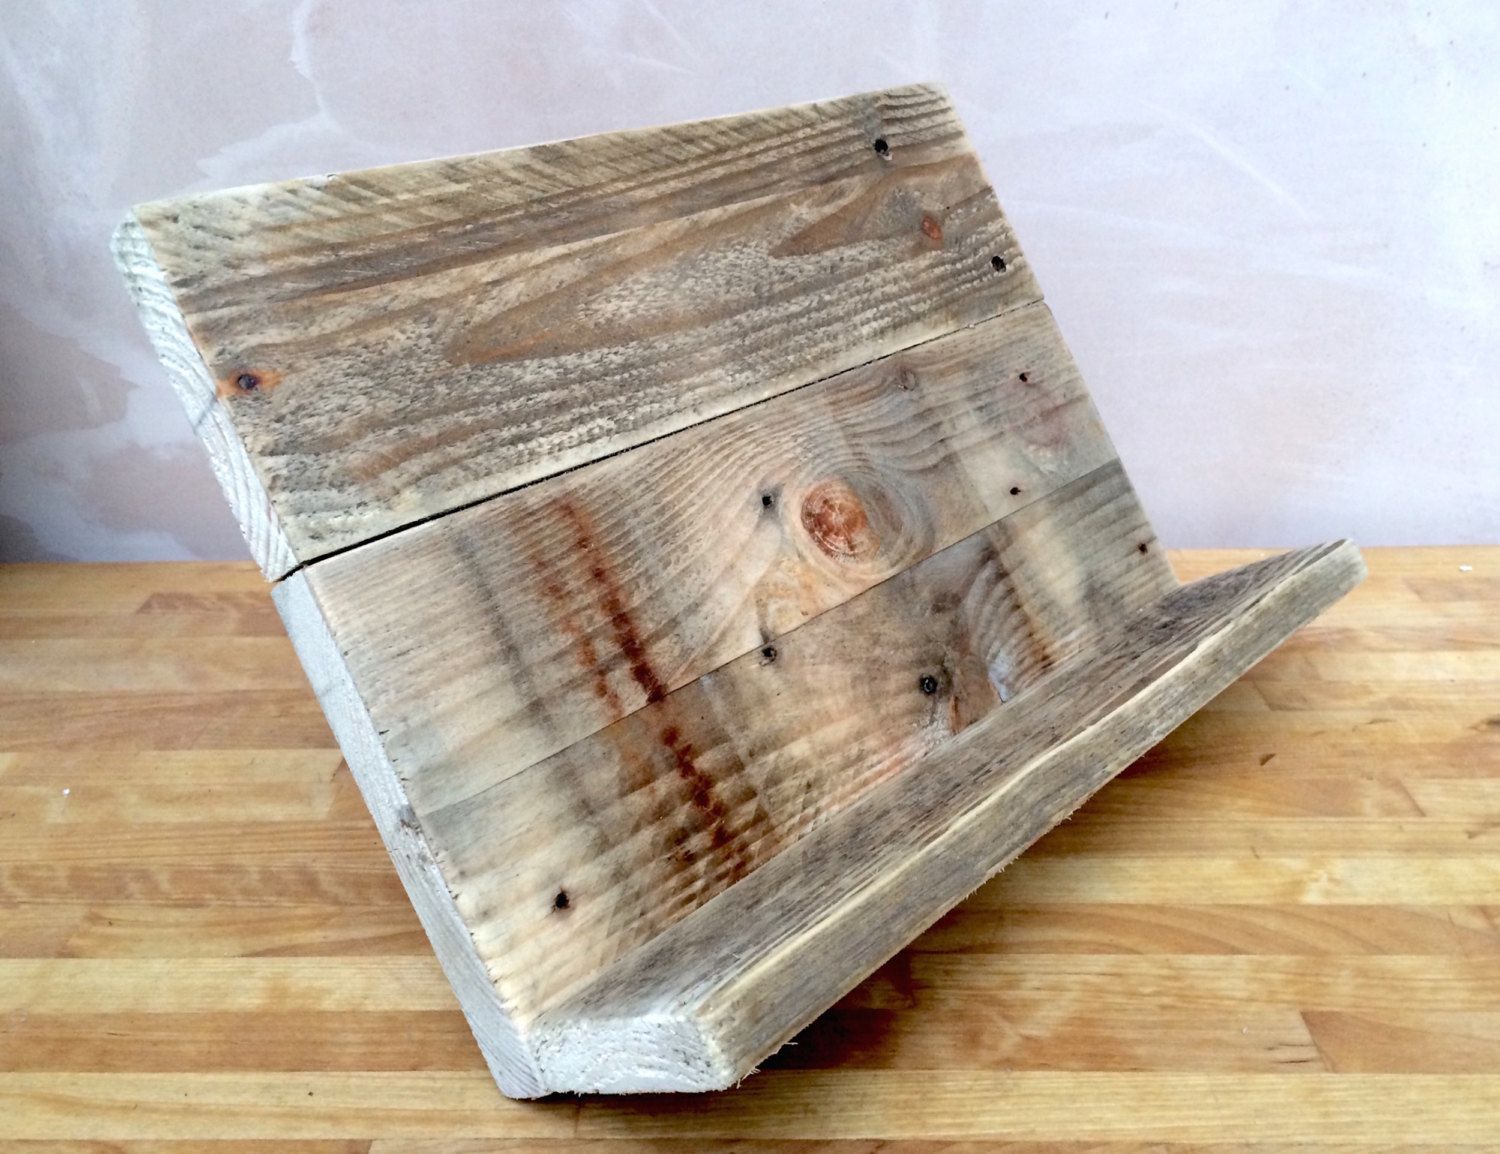 A handmade cookbook or tablet stand made from reclaimed